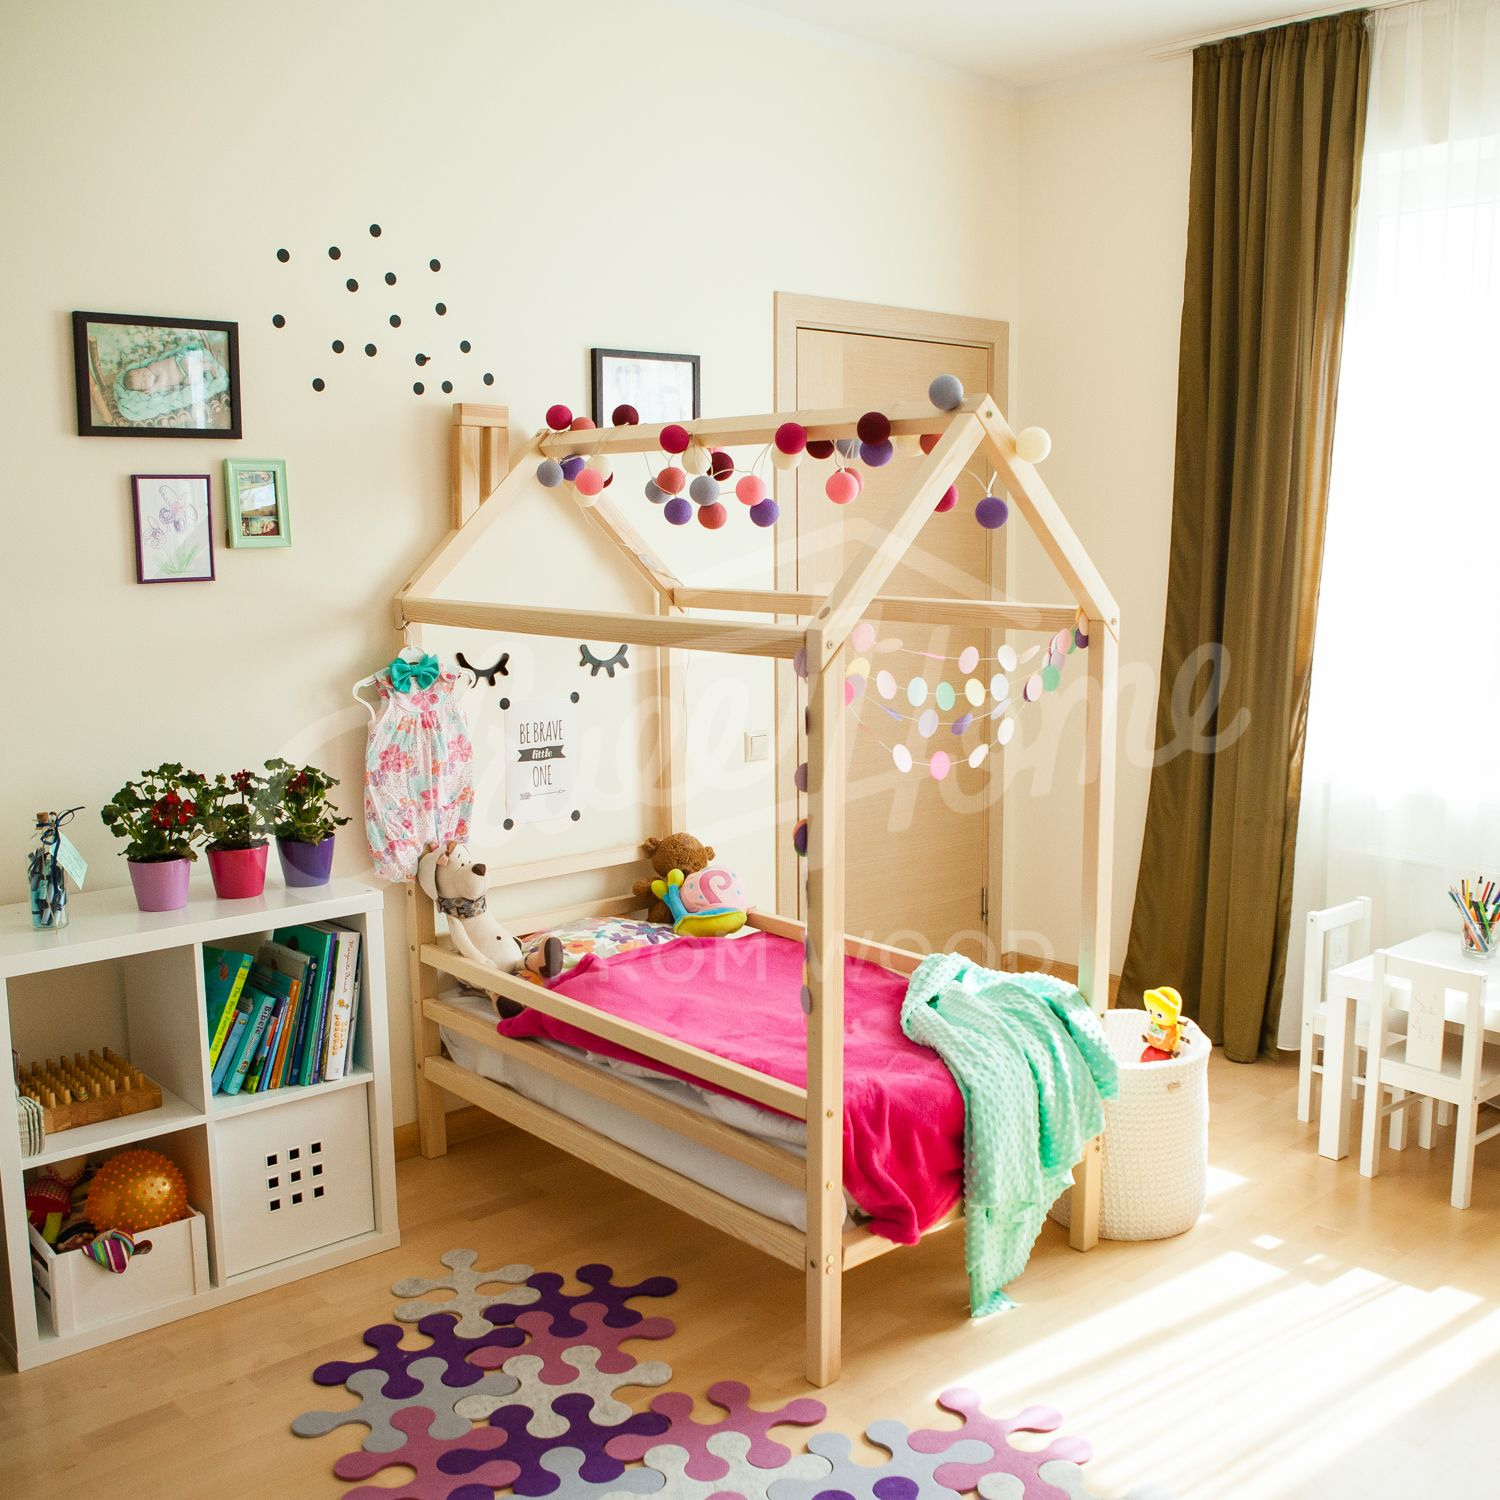 Girls Room, Wood Bed, Bed House, House Bed, Children Bed, Toddler